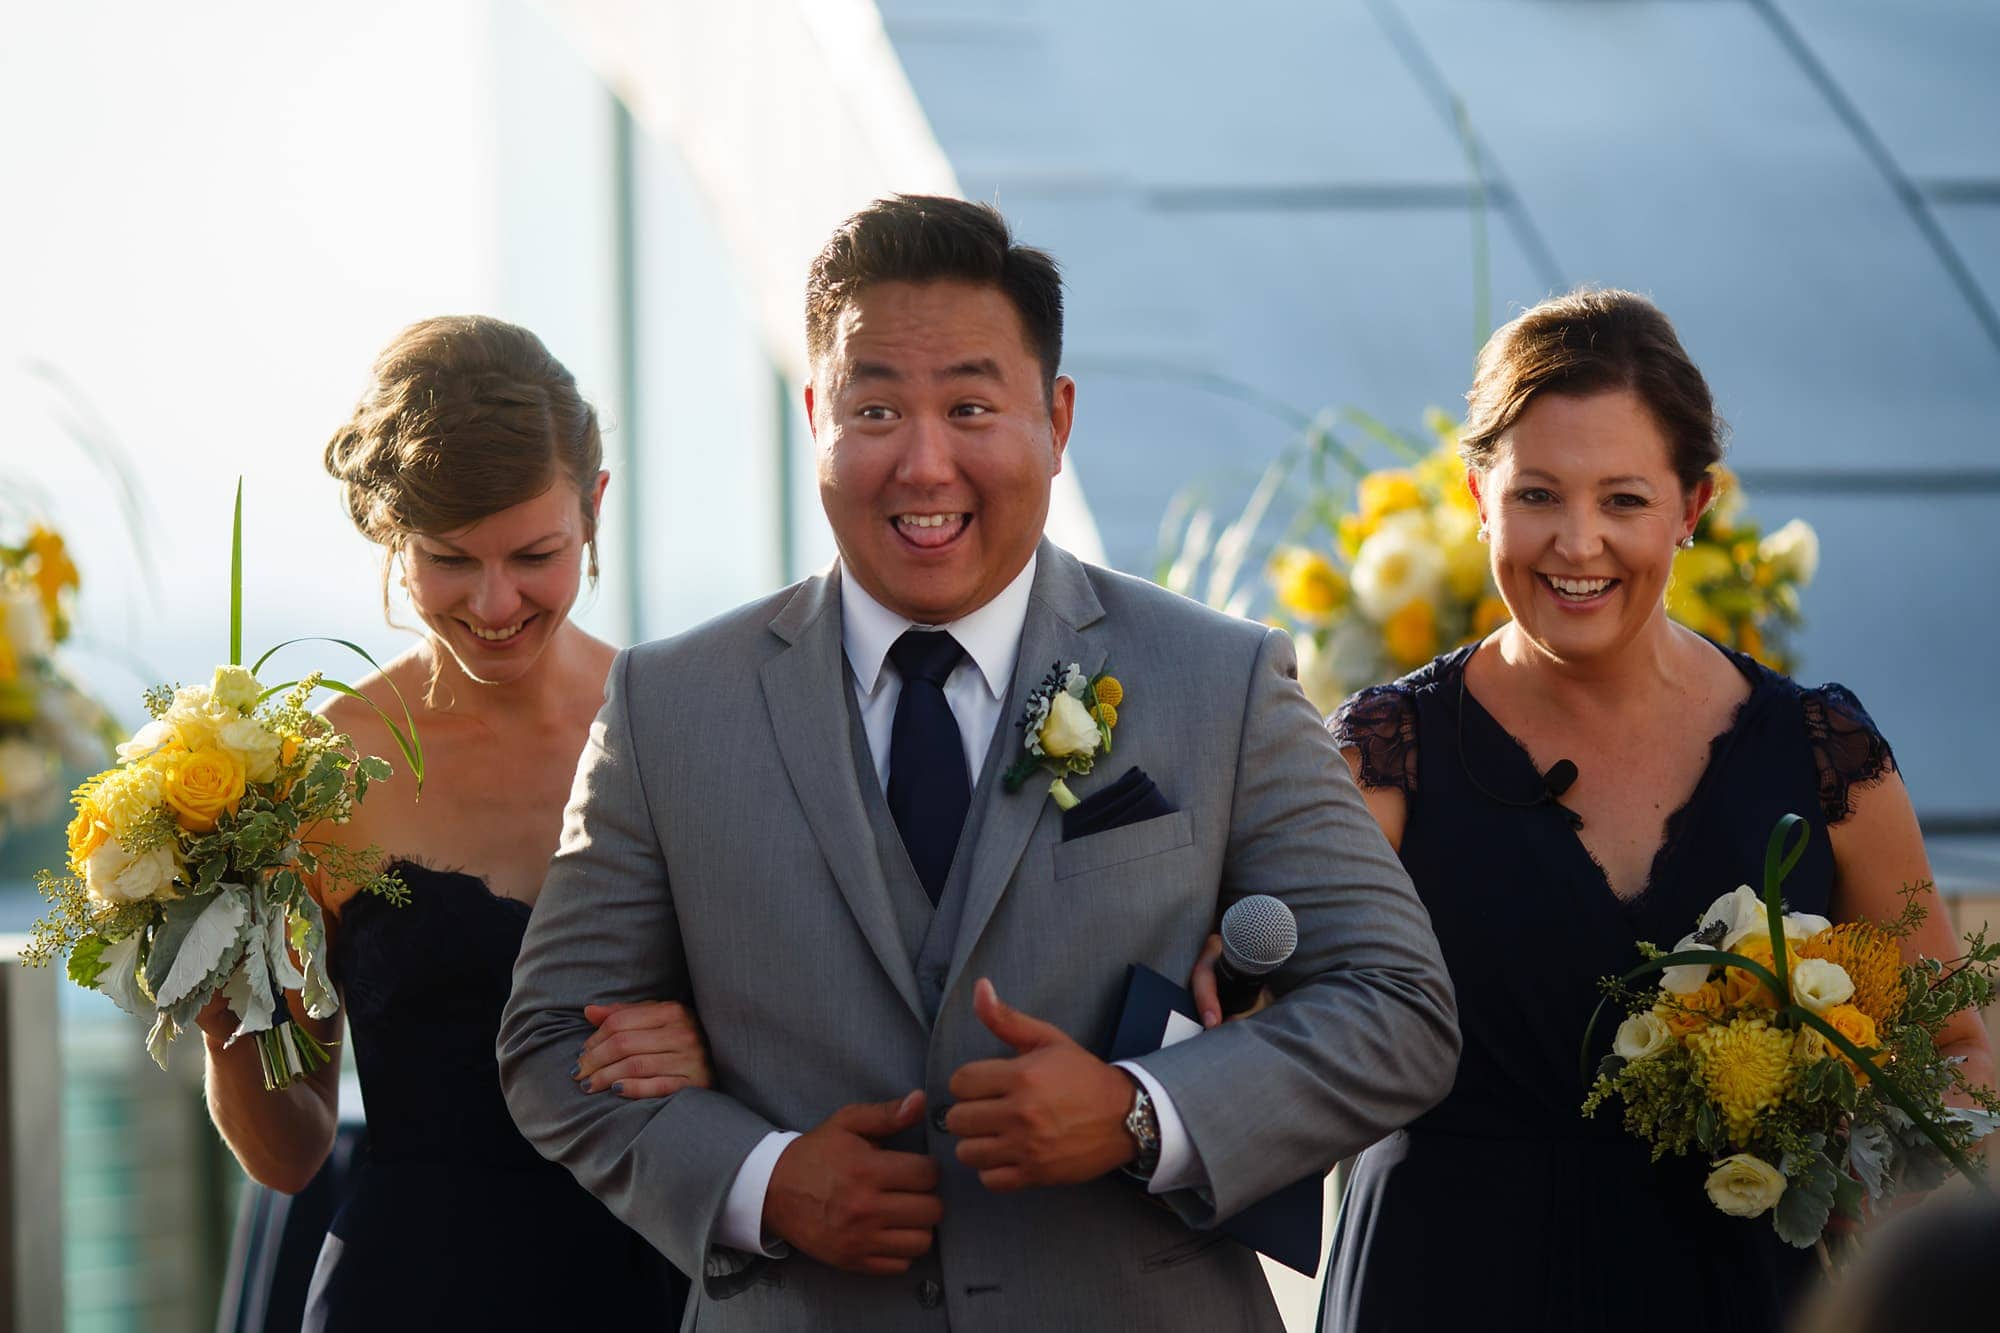 A groomsman gets excited to walk the bridesmaids down the aisle